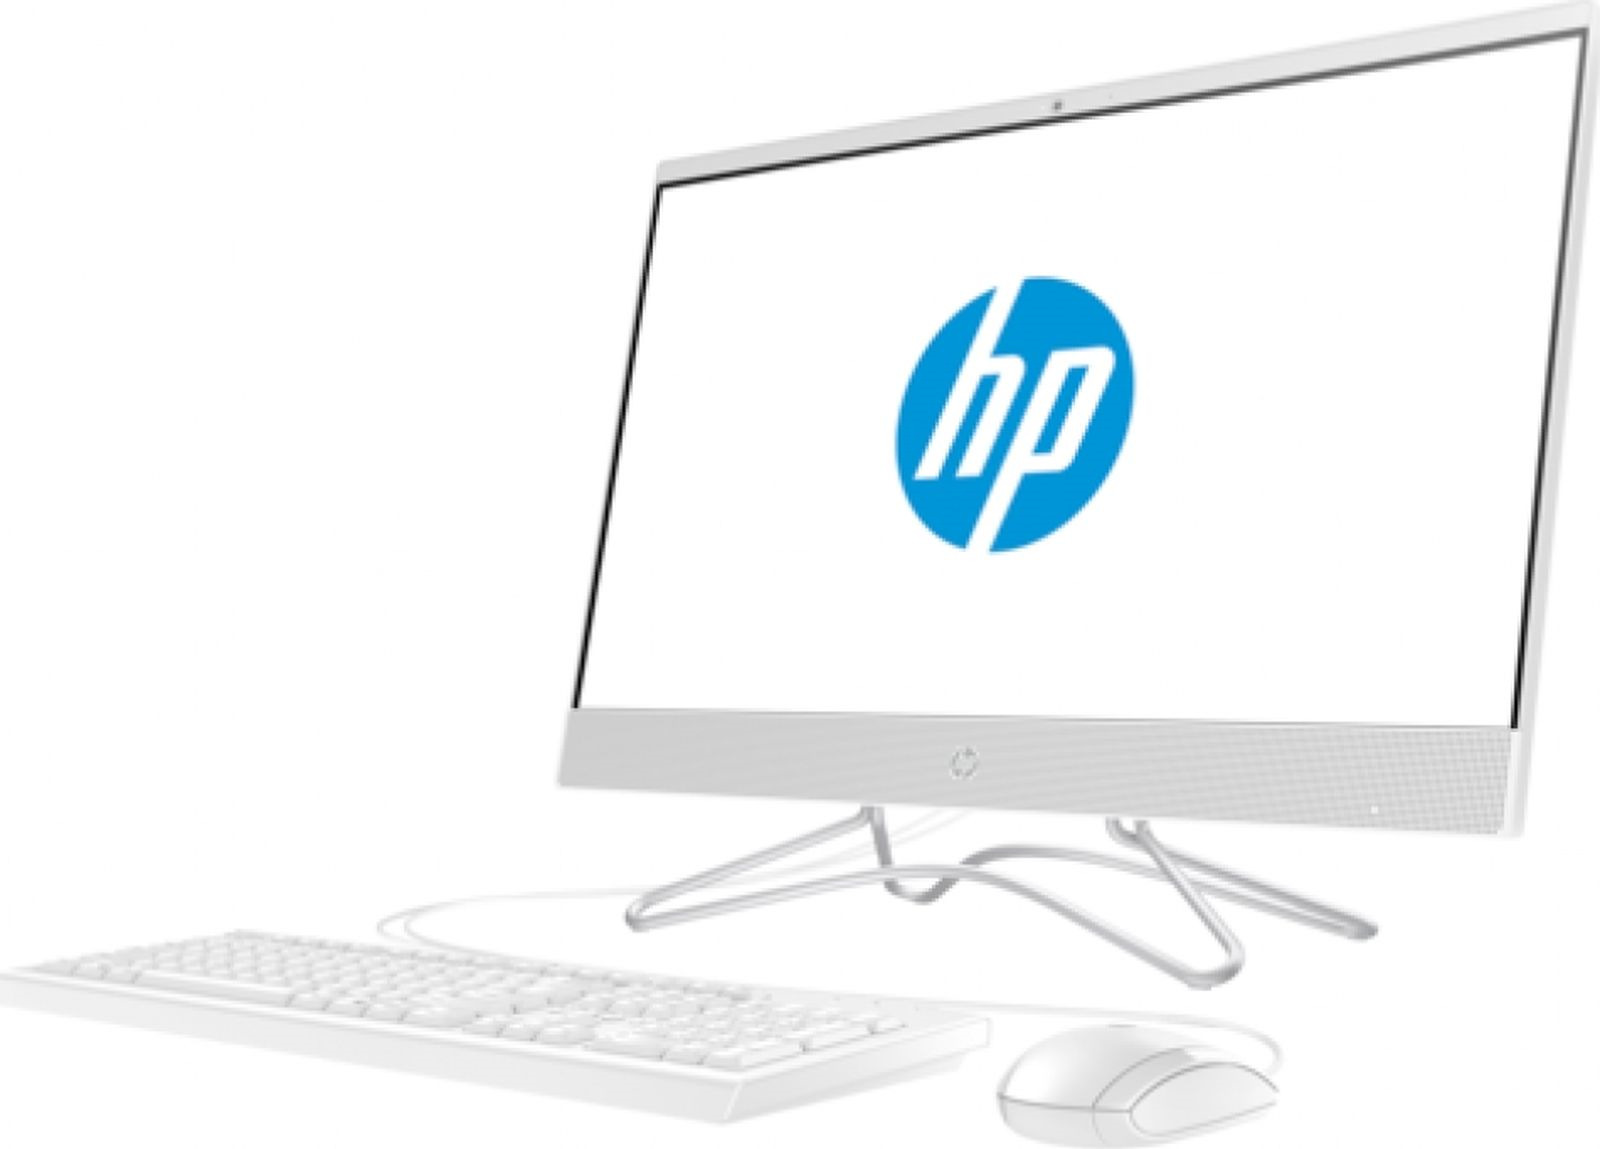 Моноблок HP Pavilion 24-f0041ur, 4GT83EA, 23.8, белый моноблок hp pavilion 24i 24 x005ur 24 fullhd touch core i5 7400t 8gb 1tb kb m win10